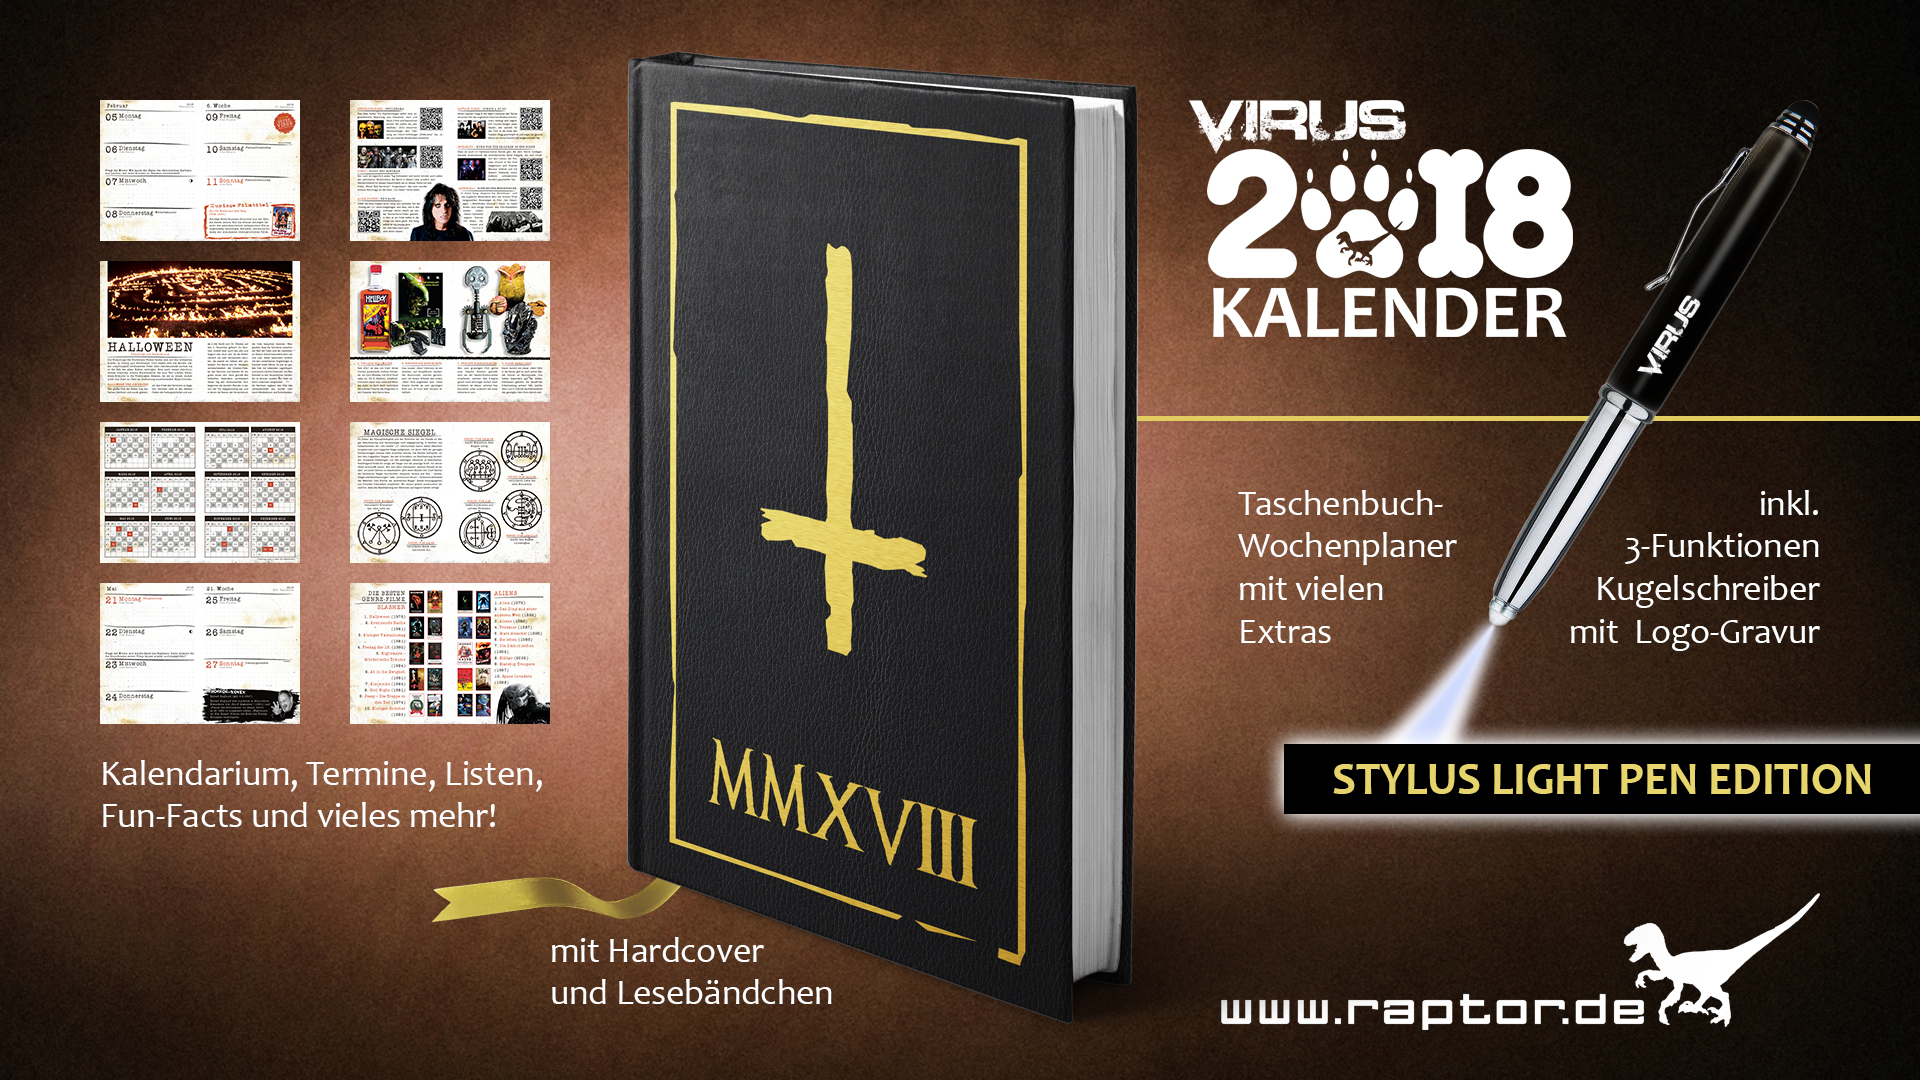 VIRUS Kalender 2018 Stylus Light Pen Edition